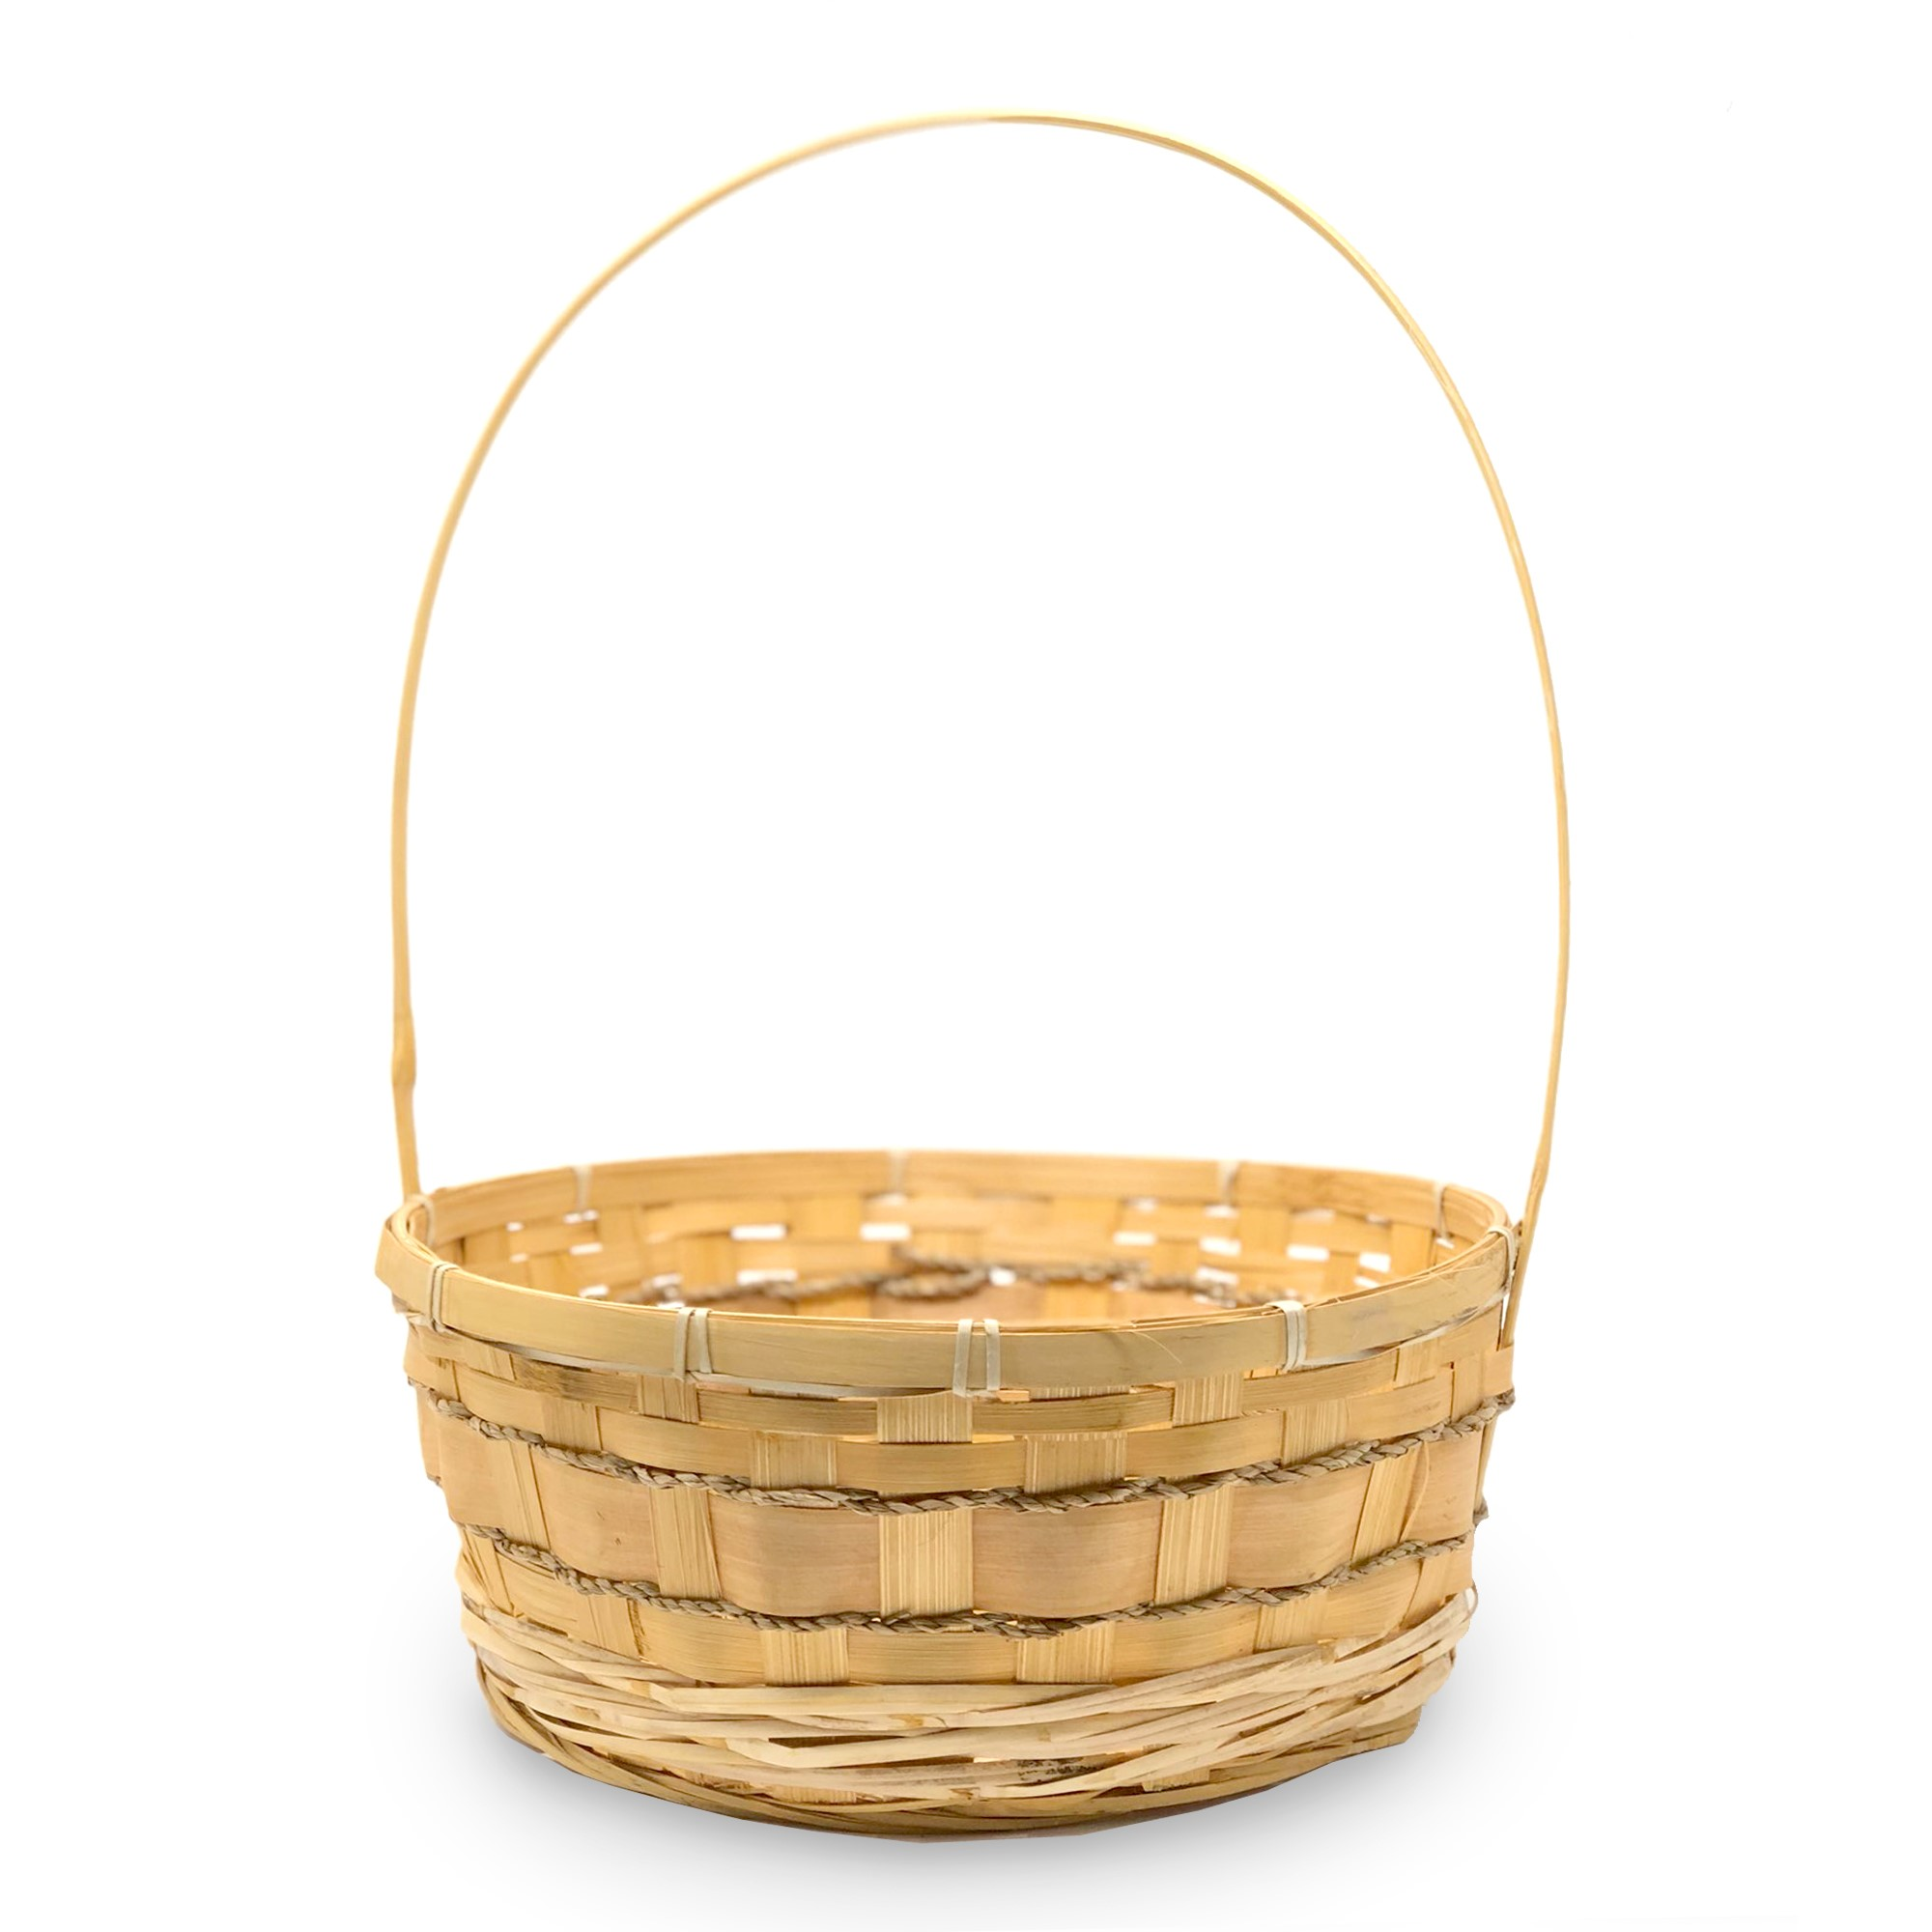 Harvest Bamboo Rope Handle Basket - Large 12in